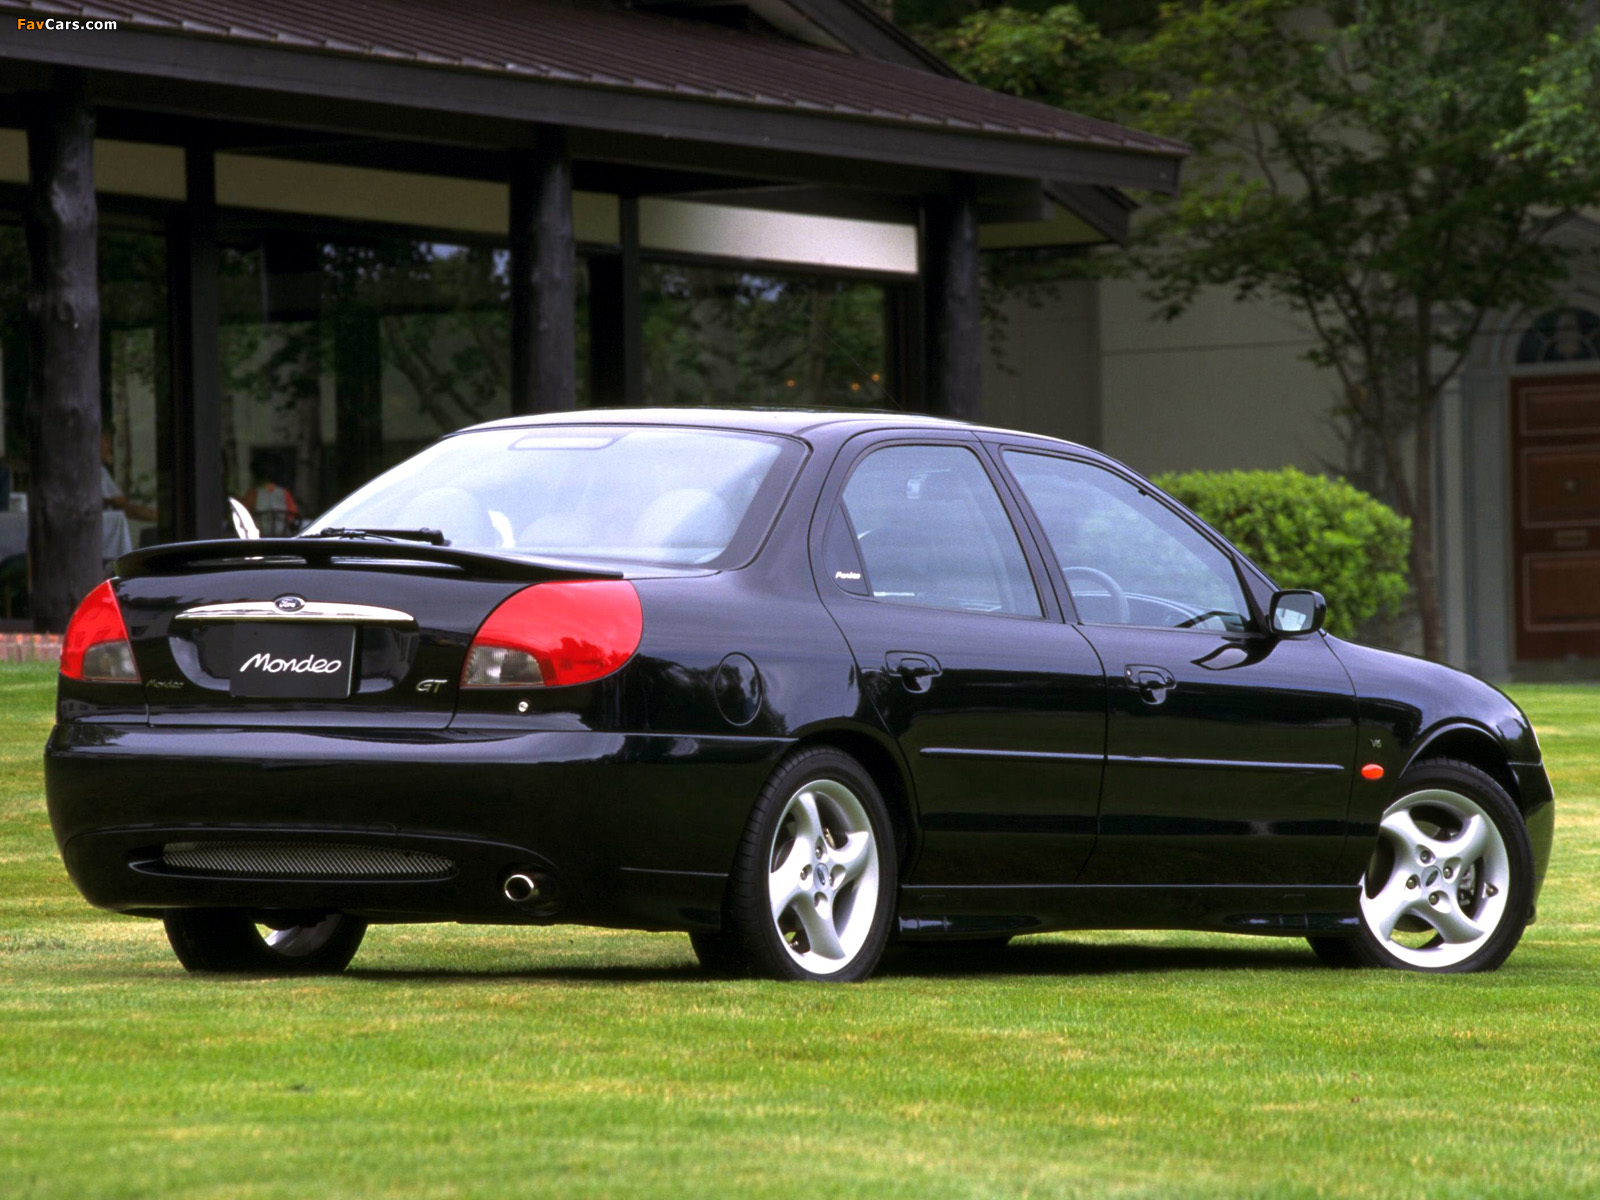 1996 Ford Mondeo #19